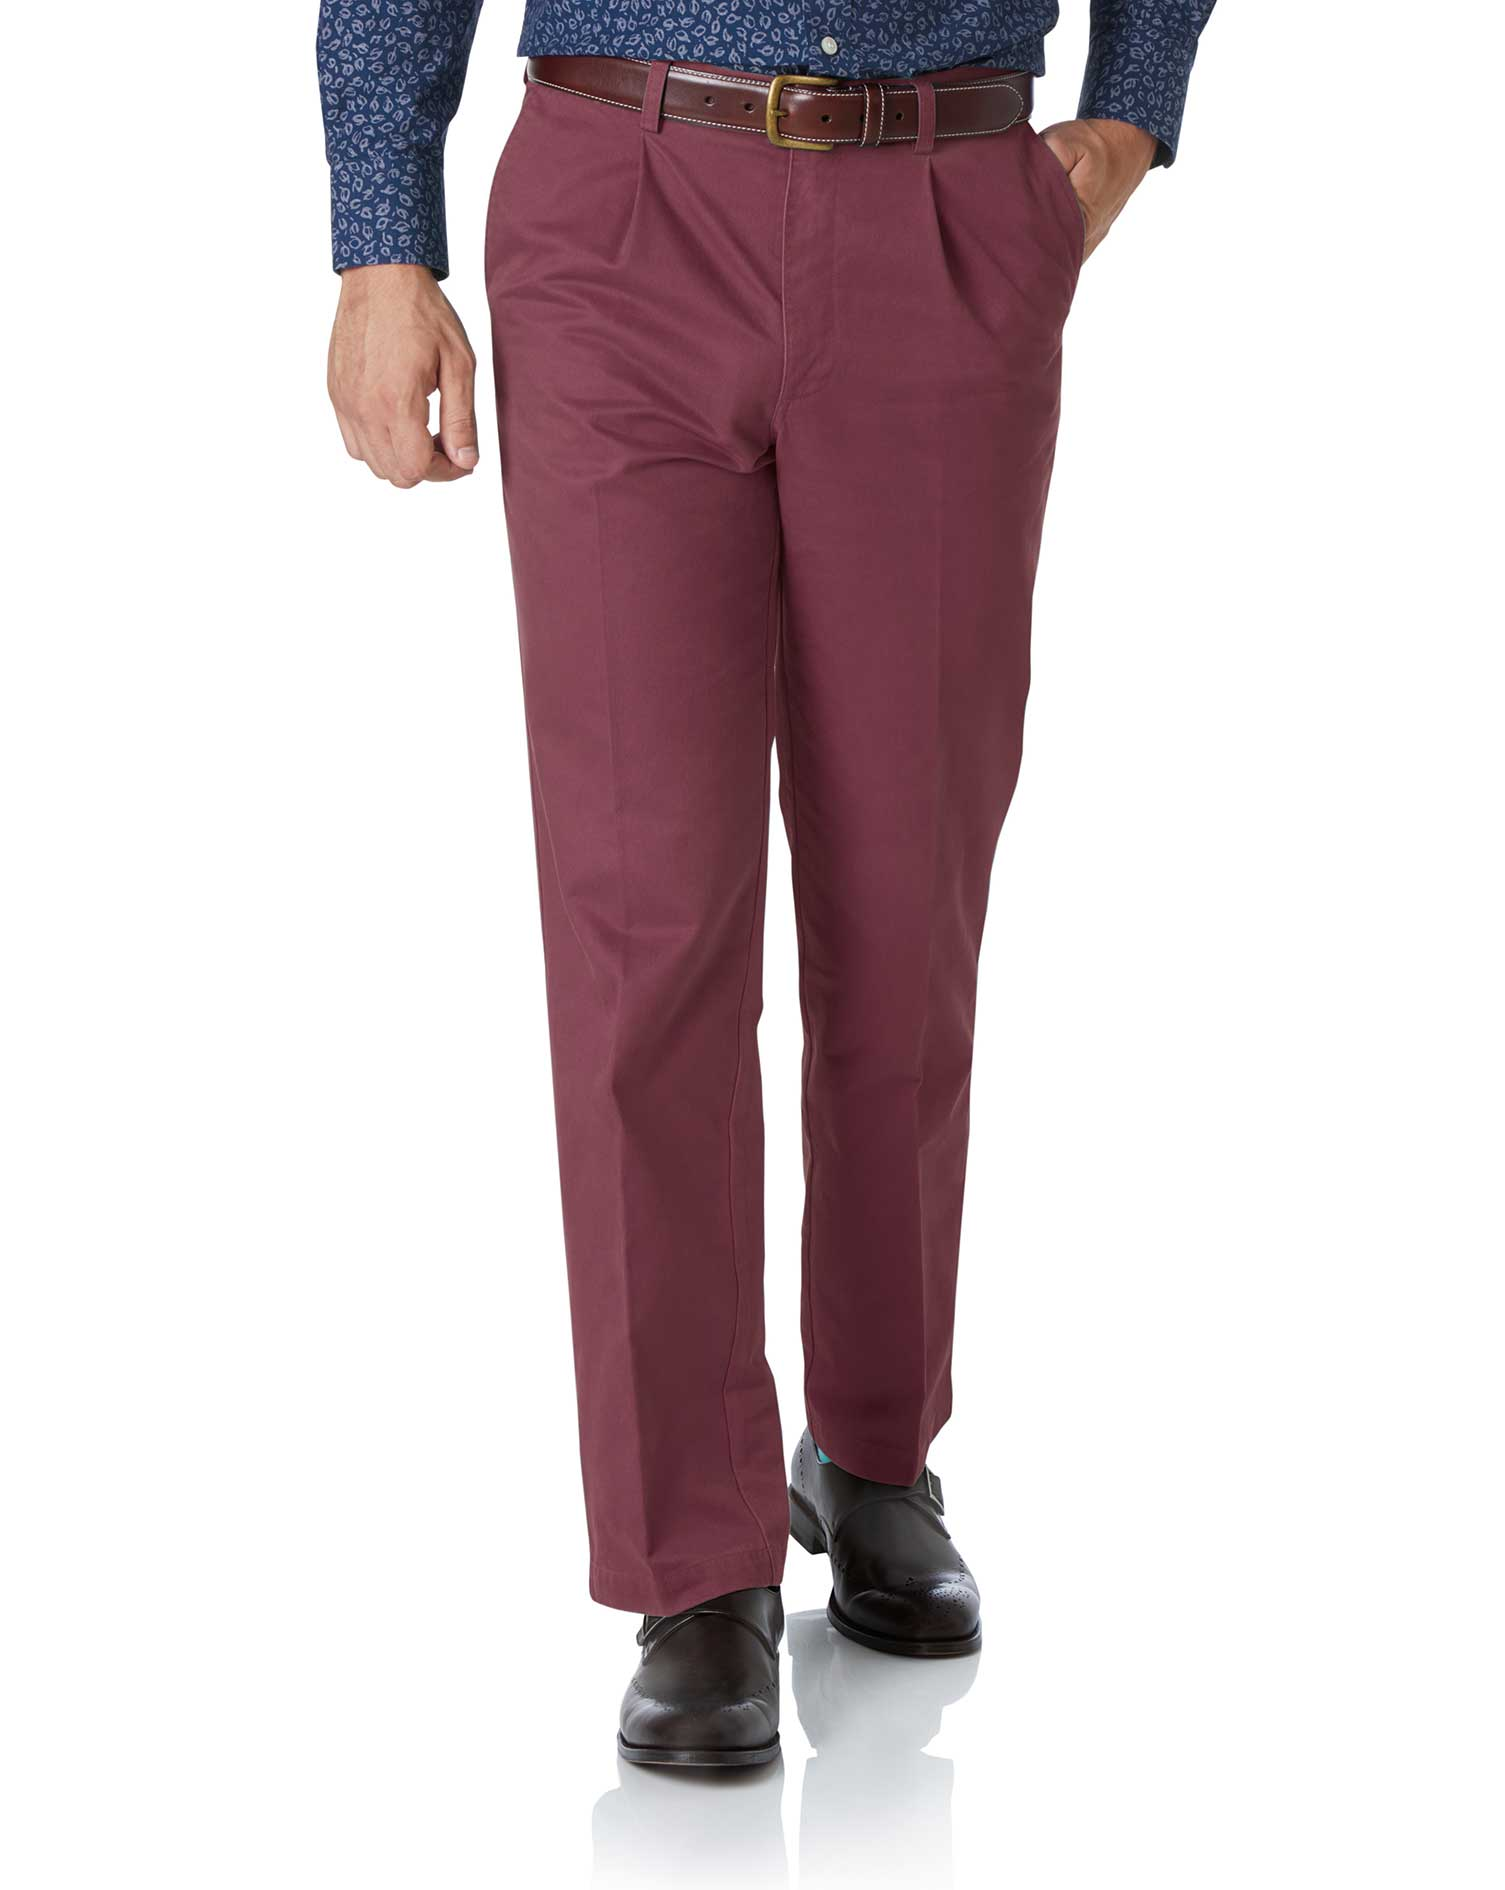 Dark Pink Classic Fit Single Pleat Washed Cotton Chino Trousers Size W32 L30 by Charles Tyrwhitt